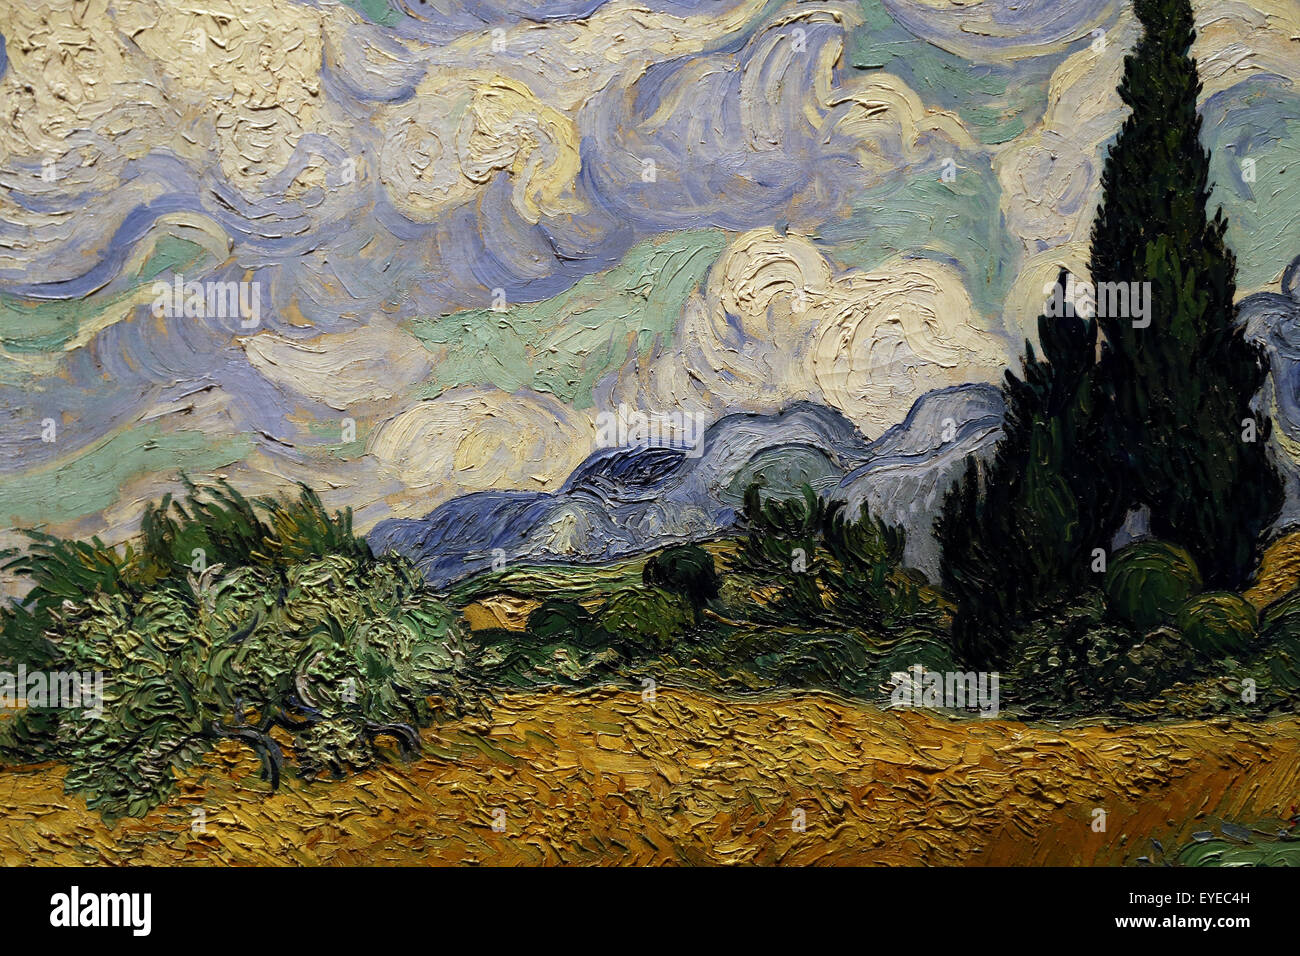 Vincent van Gogh (1853-1890). Dutch painter. Wheat Field with Cypresses, 1889. Oil on canvas. - Stock Image